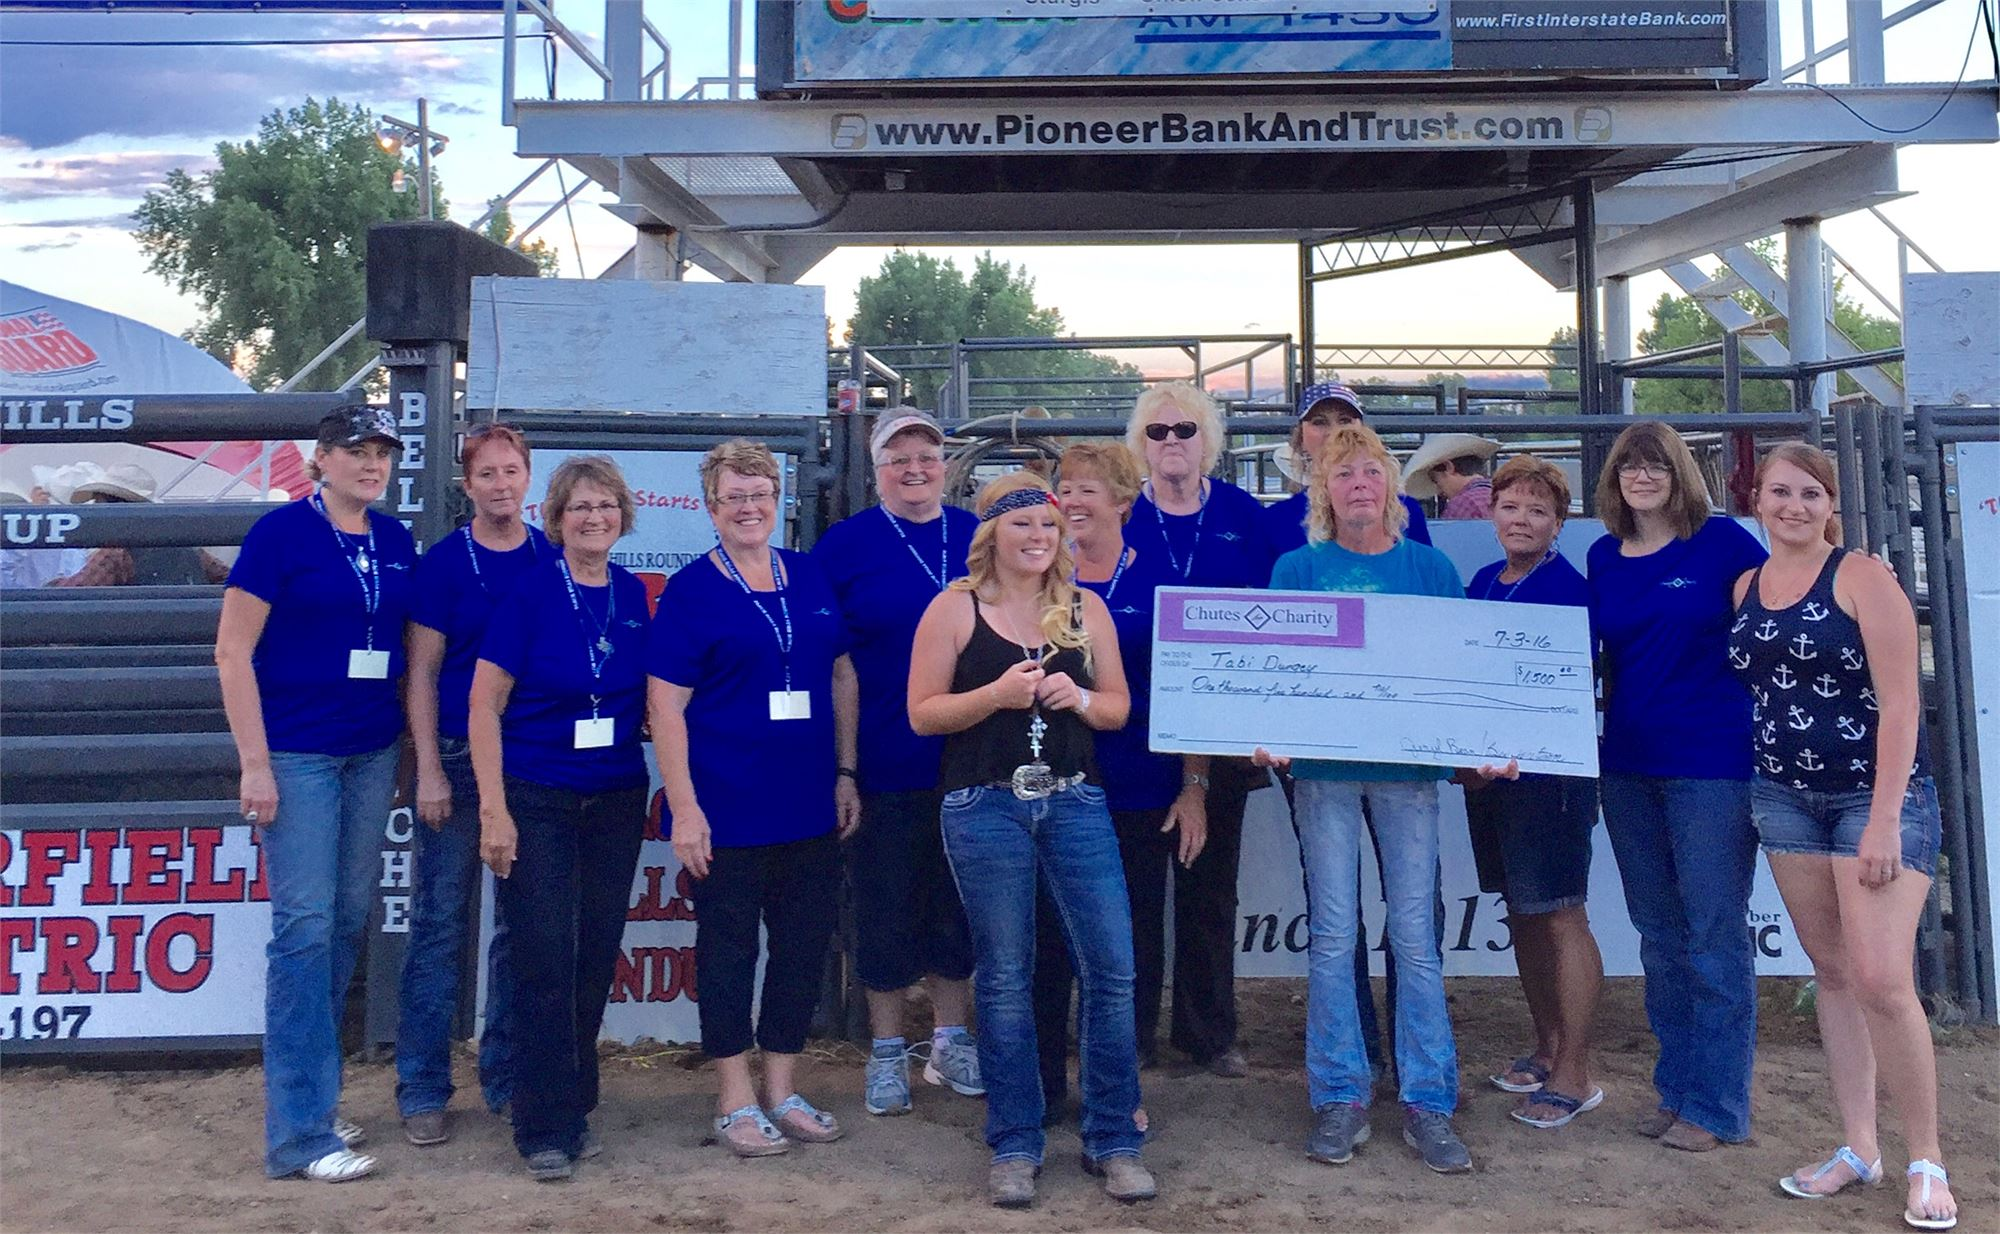 Chutes for Charity Night - July 2nd PRCA Rodeo Performance